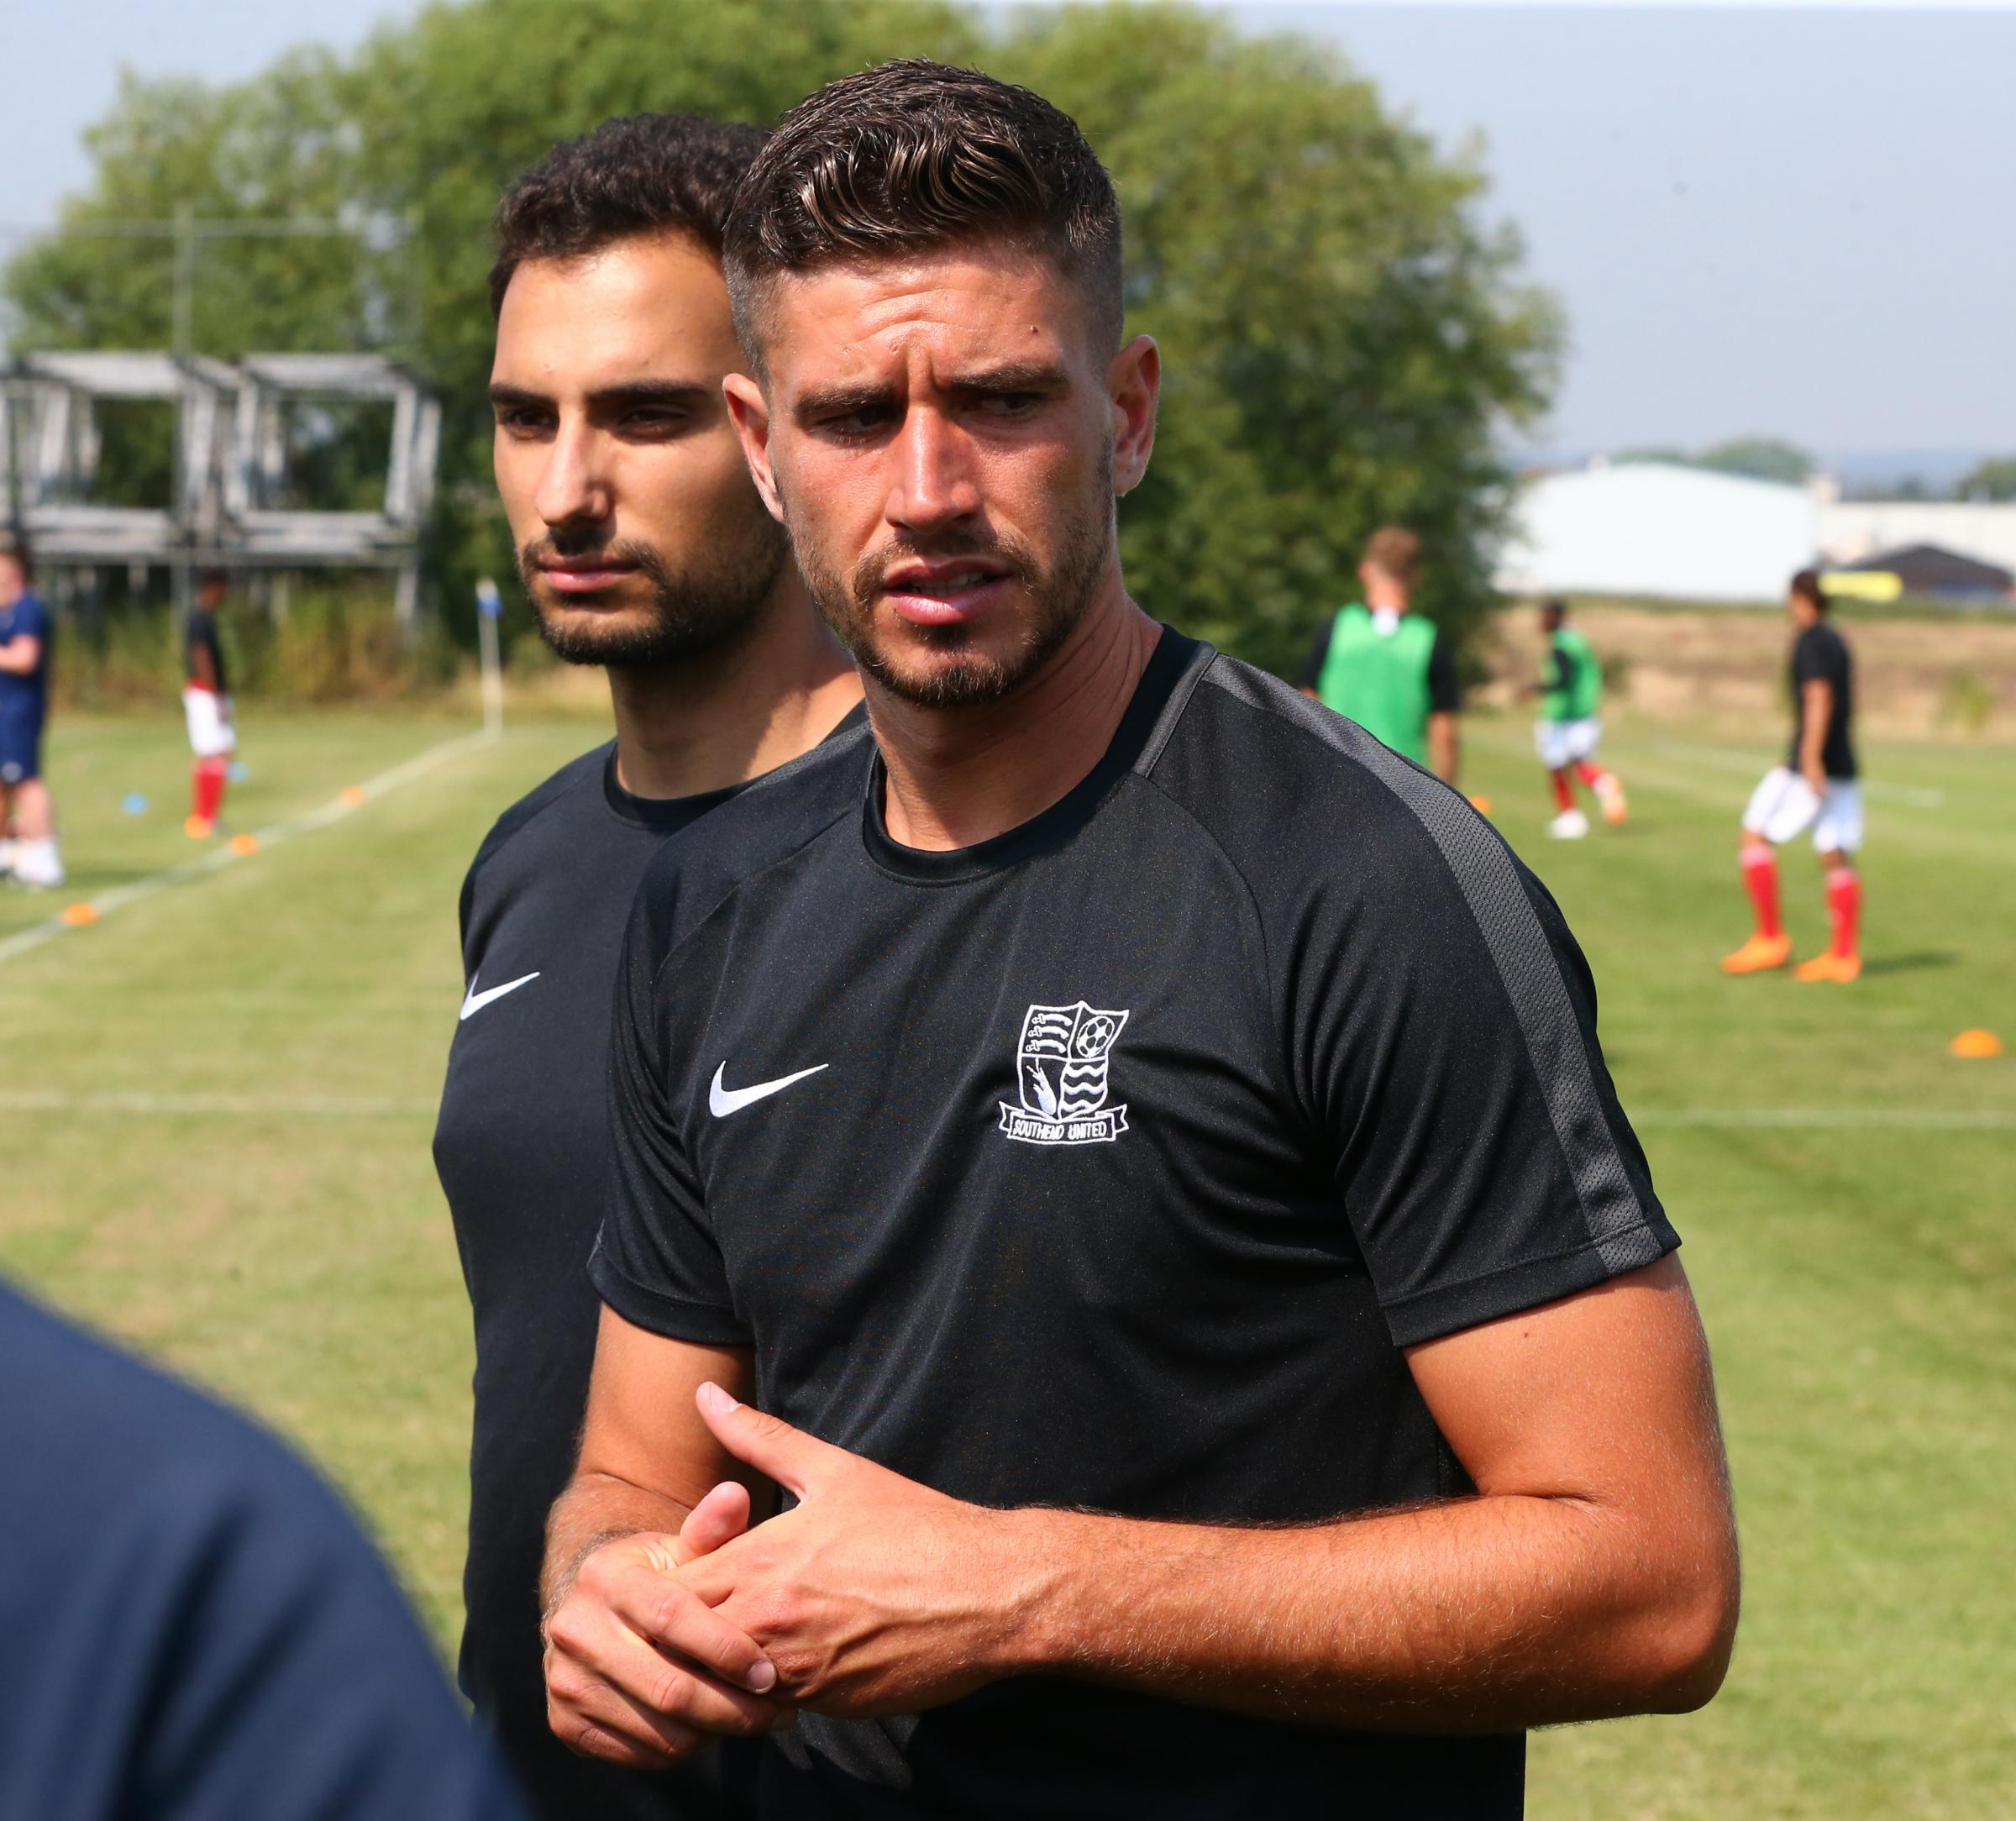 Wanting to make history - Southend United's youth team coach Dave Huzzey